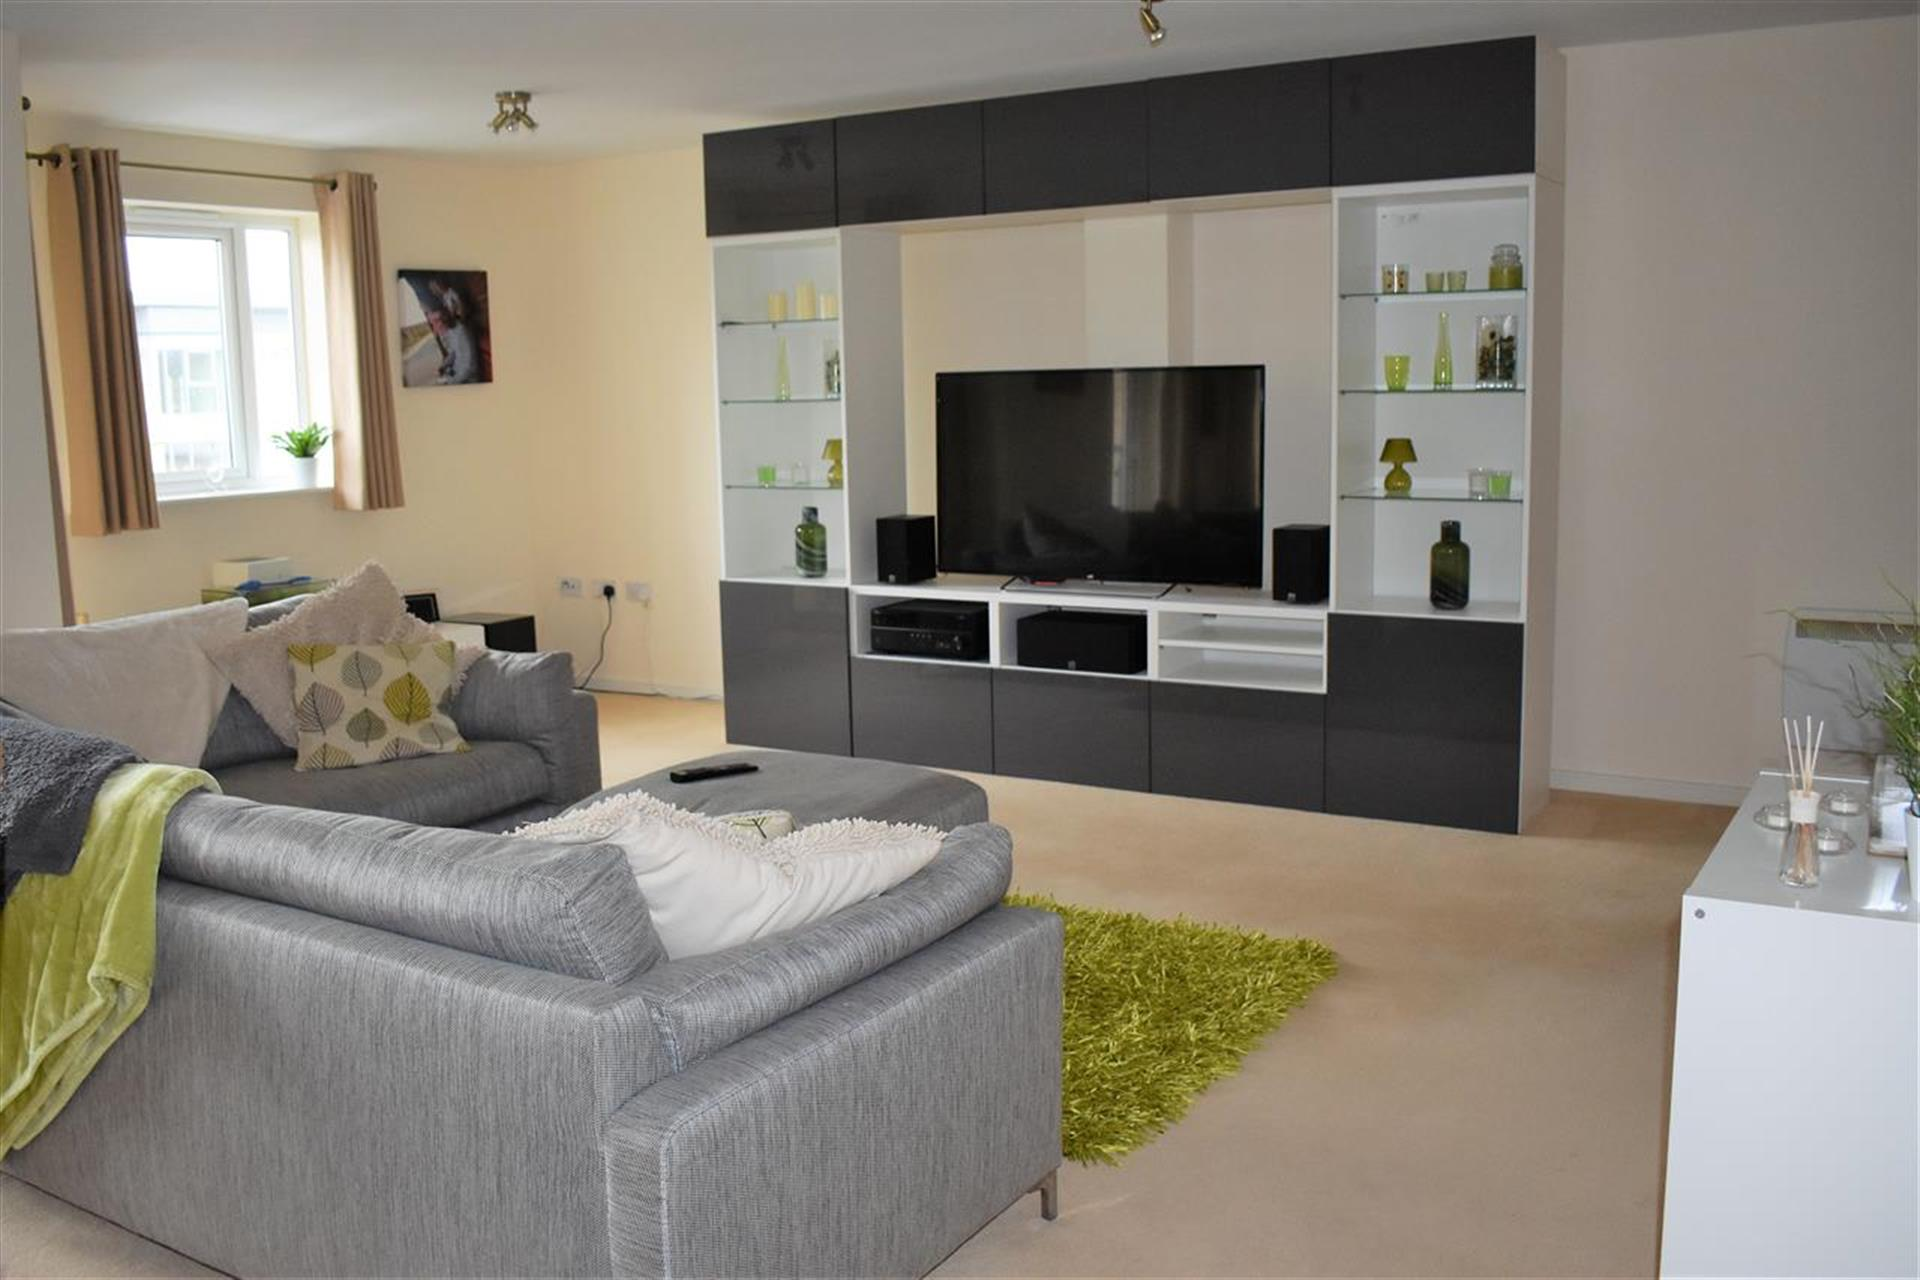 3 Bedroom Apartment Flat / Apartment To Rent - Main Picture